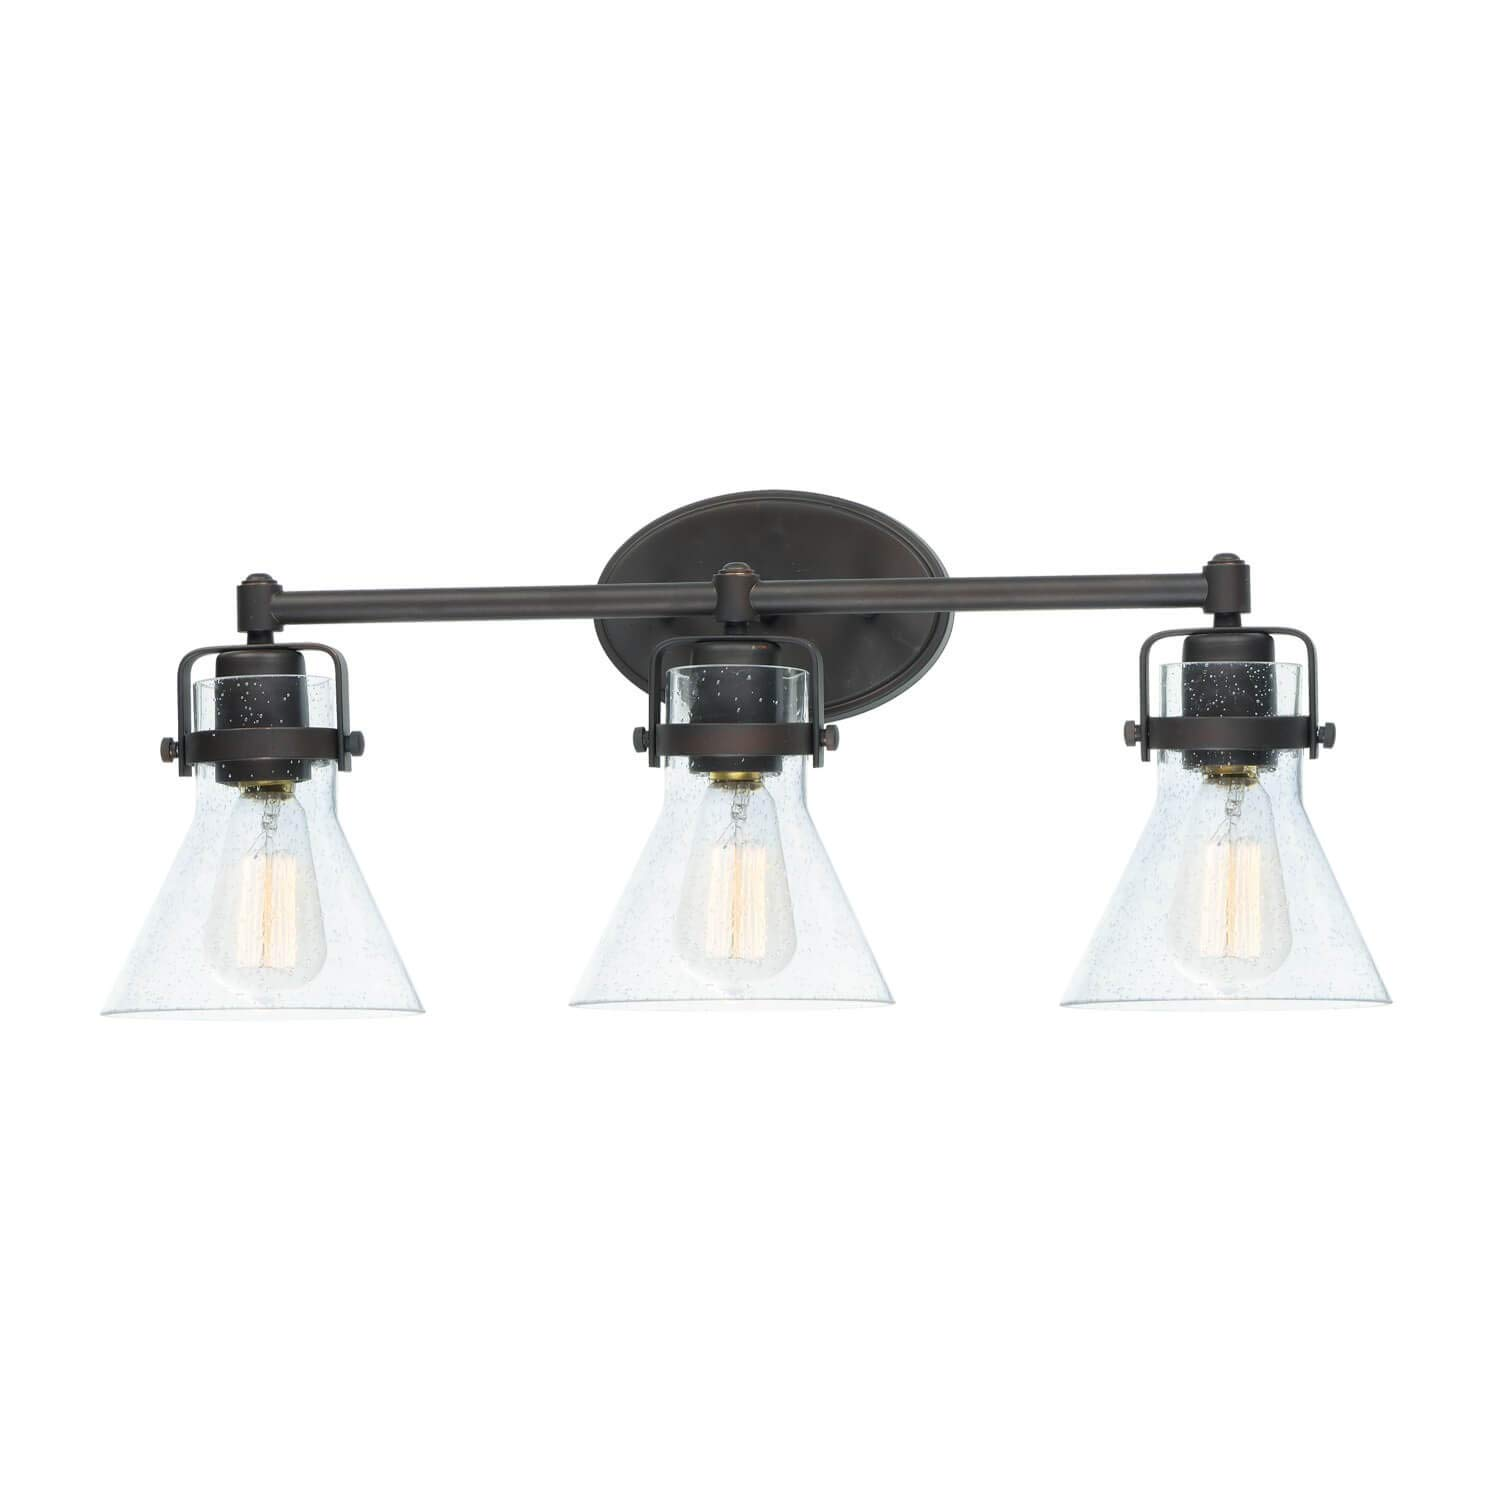 Bidwell Lighting Whiskeytown 24 Wide Vanity Light – Oil Rubbed Bronze